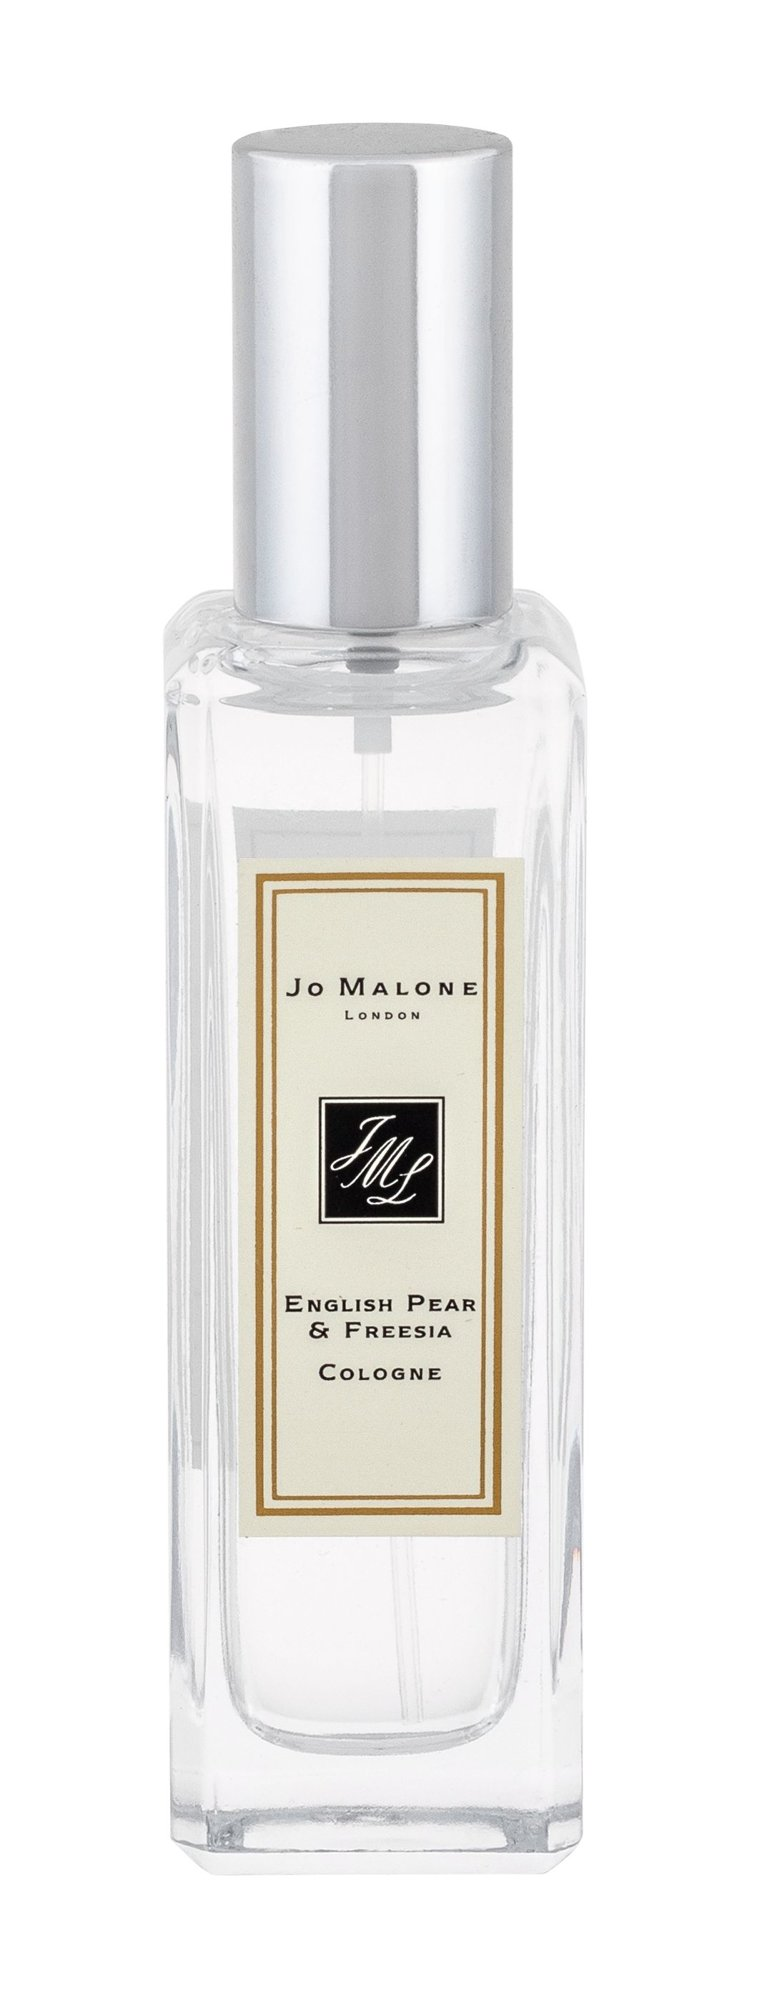 Jo Malone English Pear & Freesia, edc 100ml - Teszter